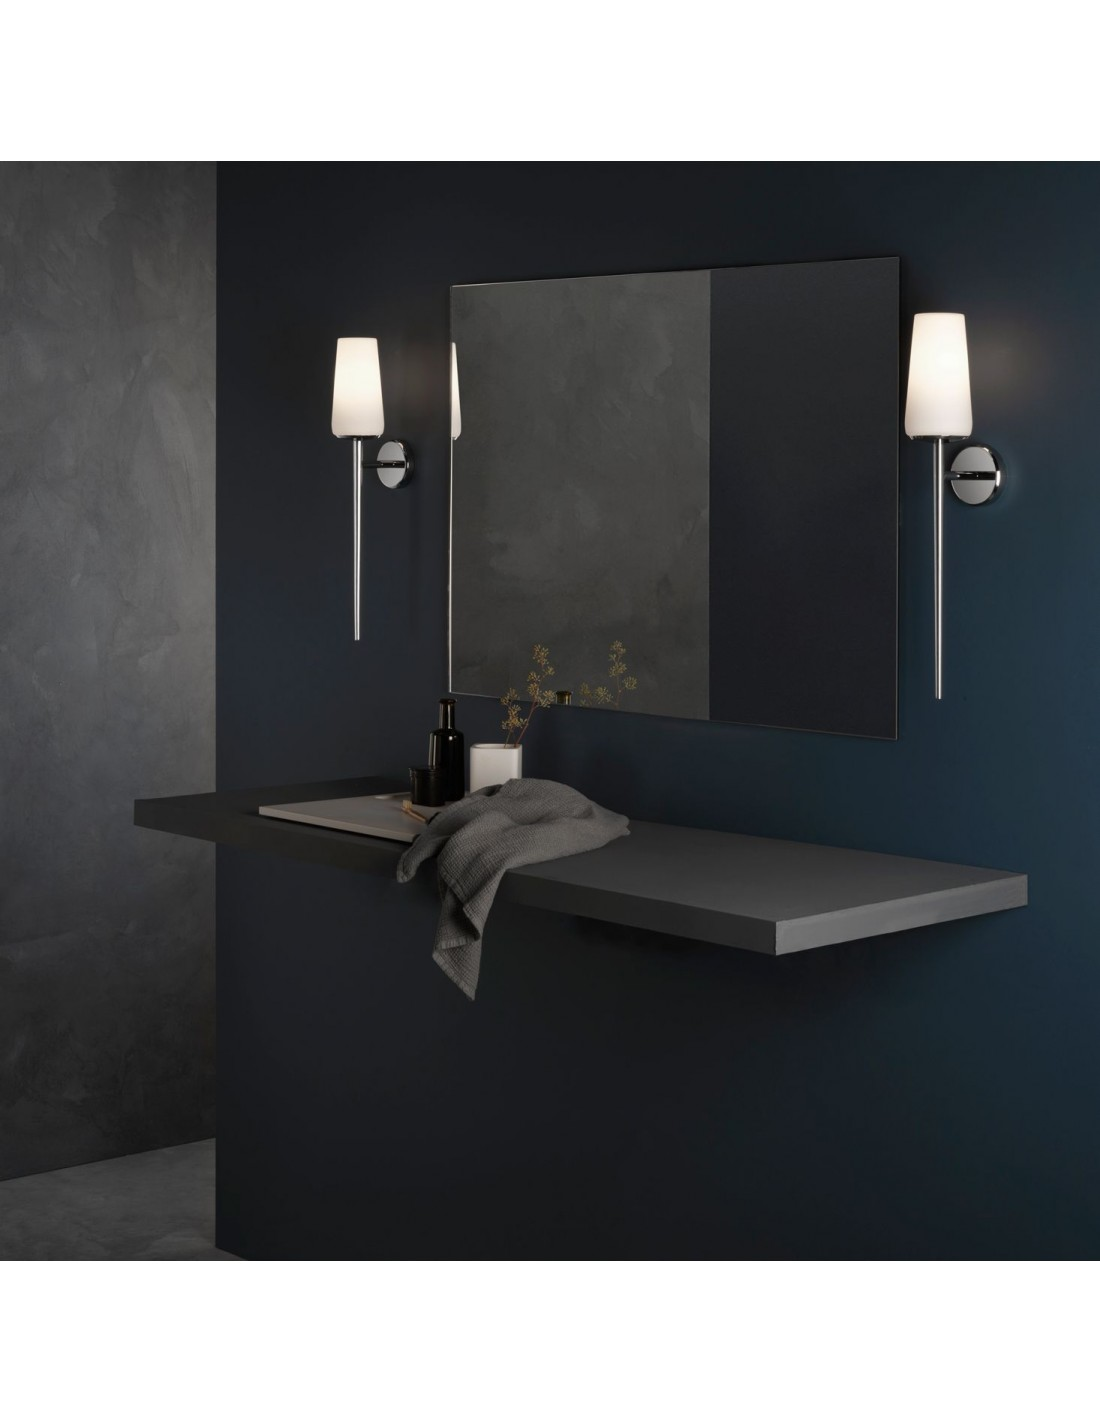 applique sdb deauville chrome dans sdb astro lighting. Black Bedroom Furniture Sets. Home Design Ideas